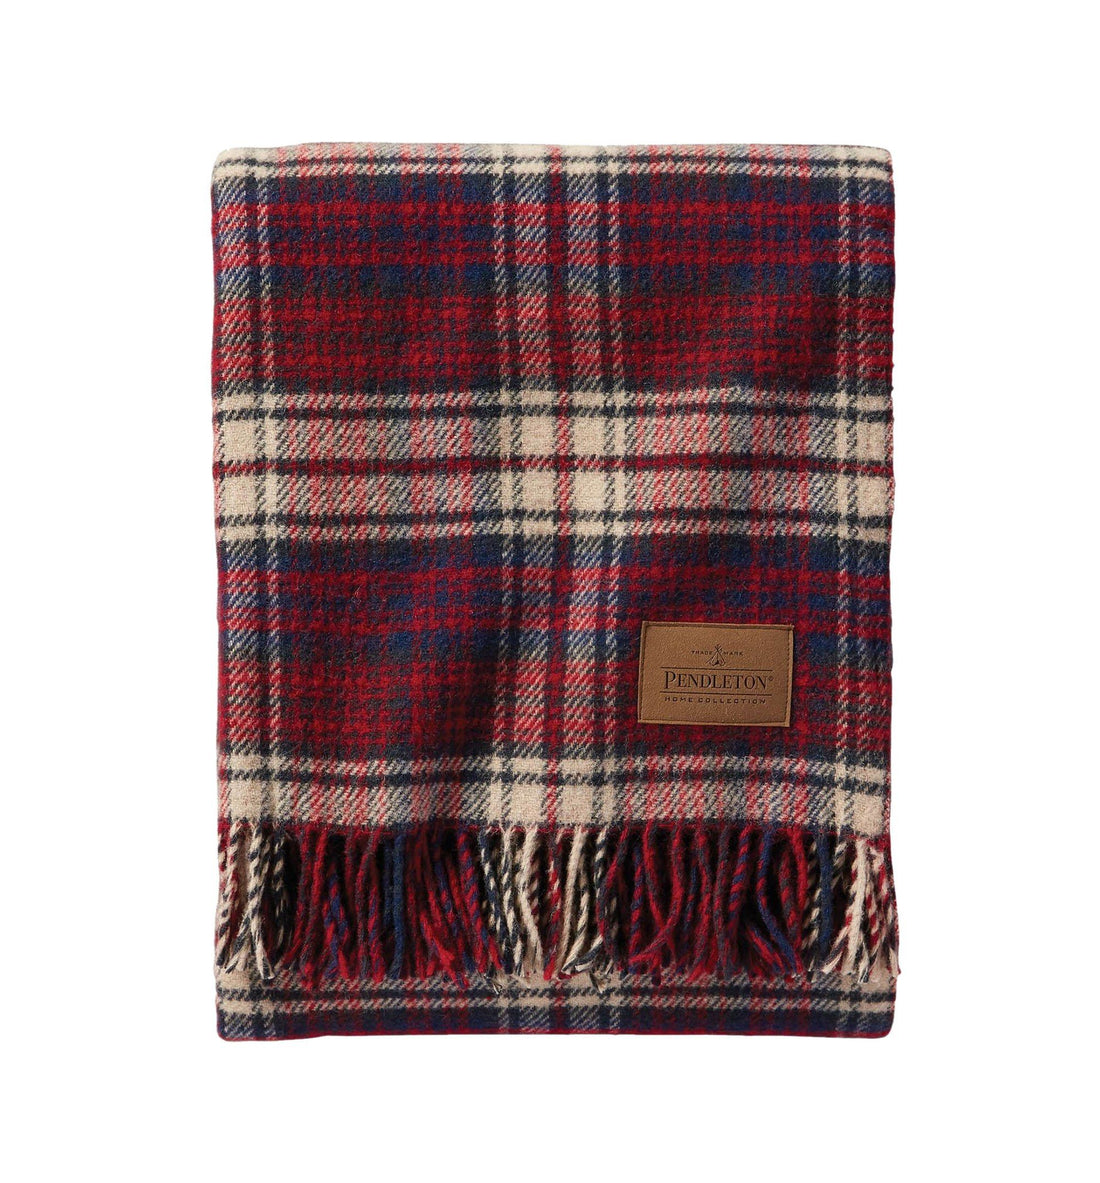 Pendleton Woolen Mills Carry Along Motor Robe Blanket - Pittock - Outdoor Living/Travel - Iron and Resin